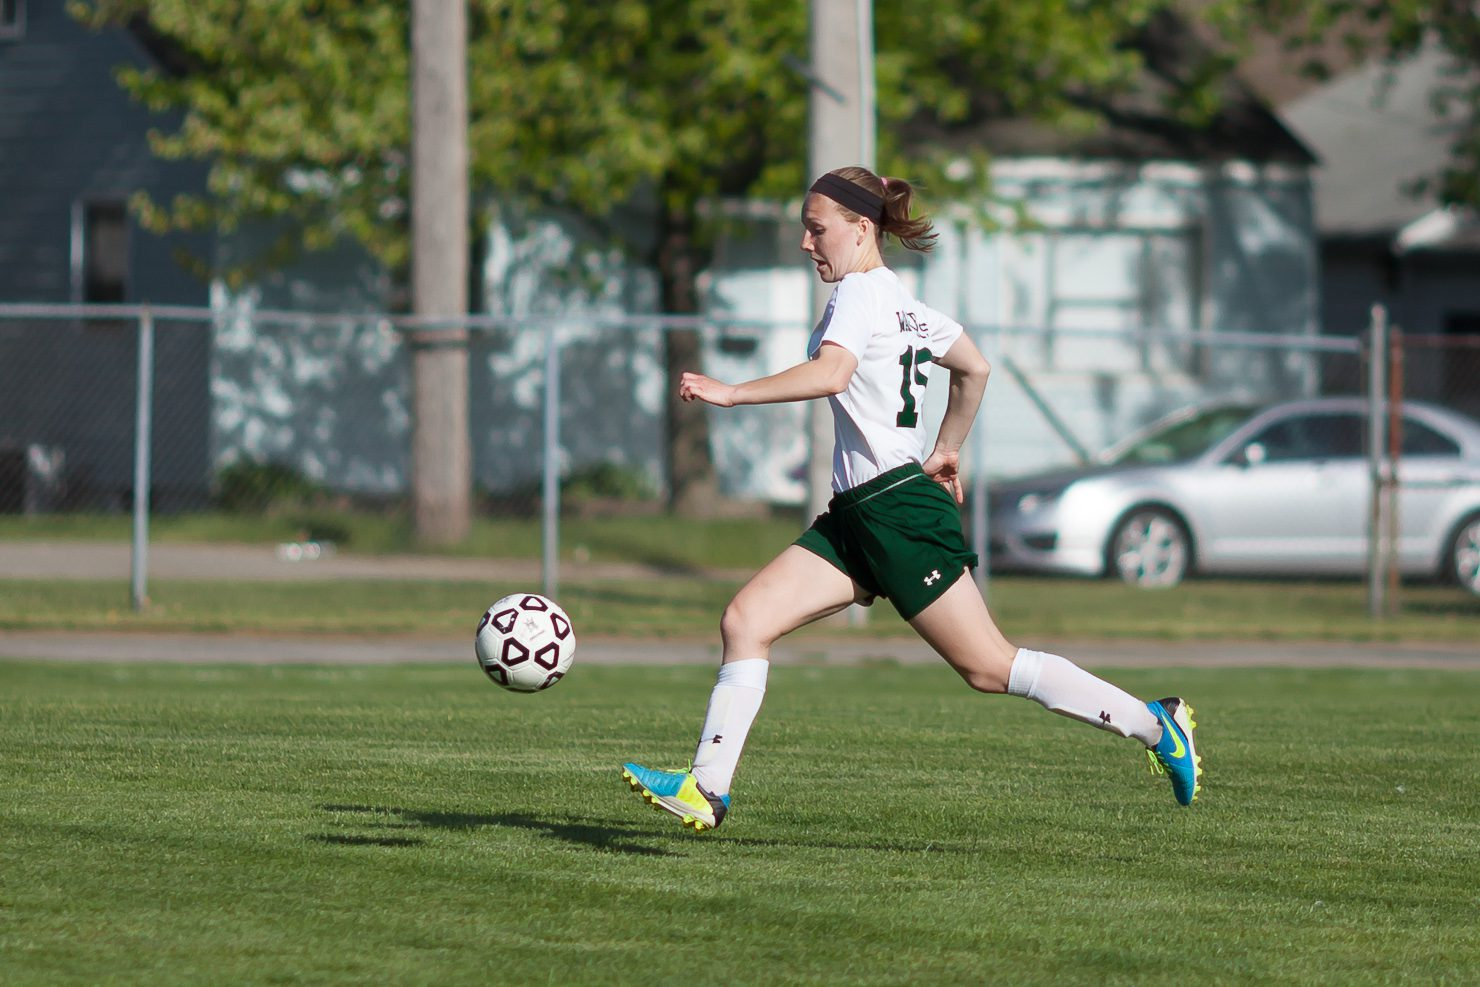 Western Michigan Christian soccer team advances to district title game with win over North Muskegon